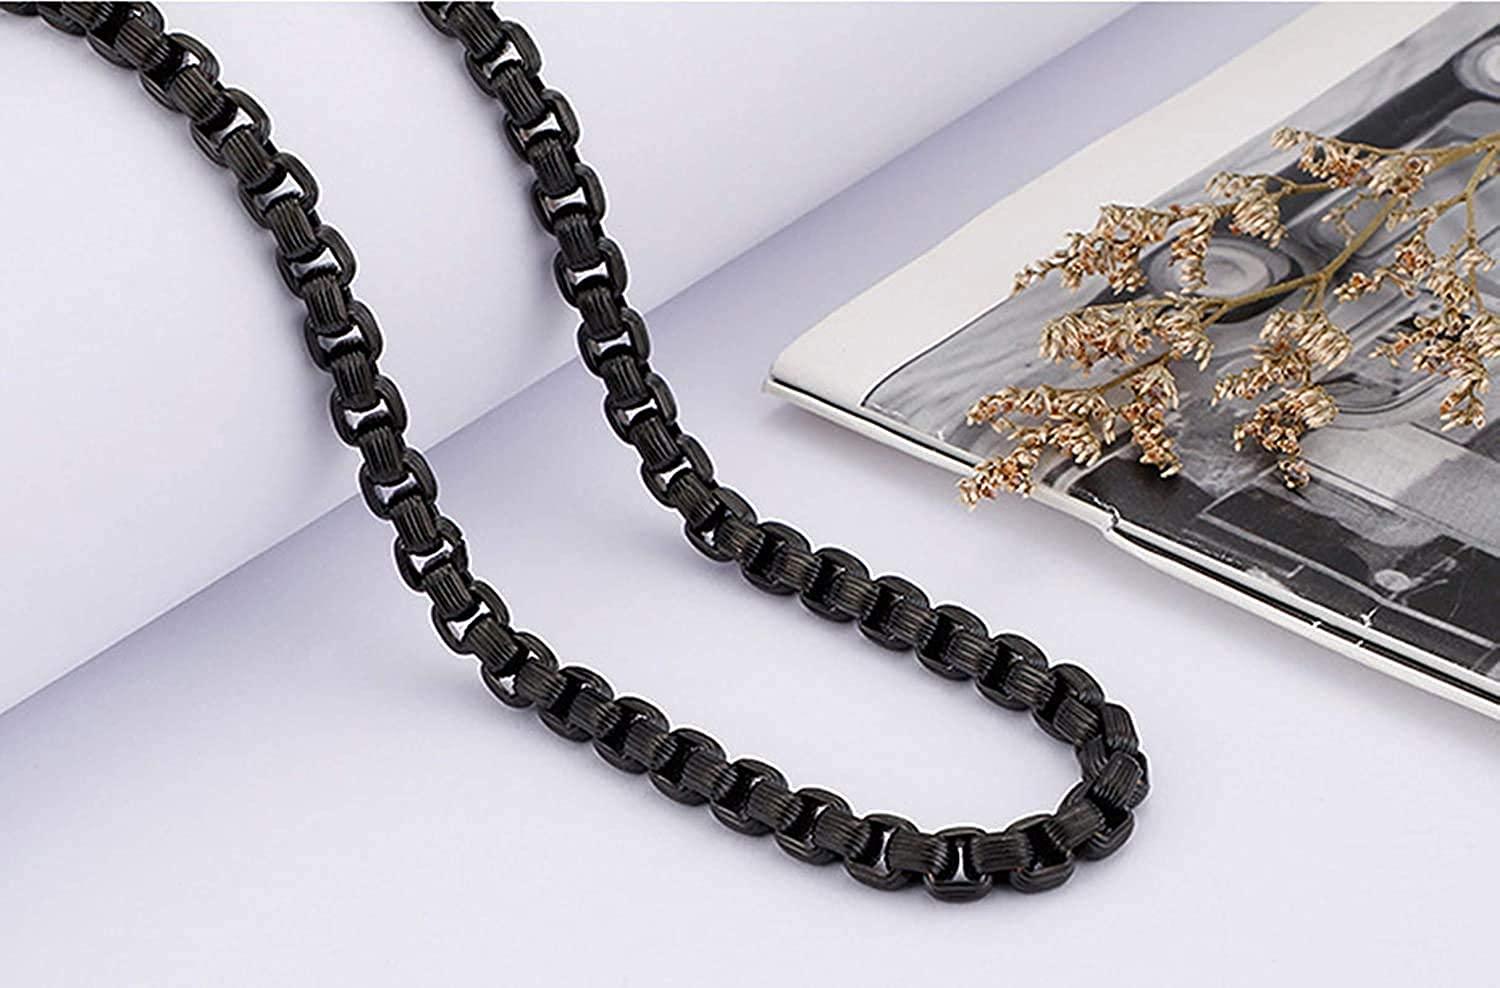 LOPEZ KENT Stainless Steel Necklace for Men Belcher Chain Necklace Black//Silver//Gold